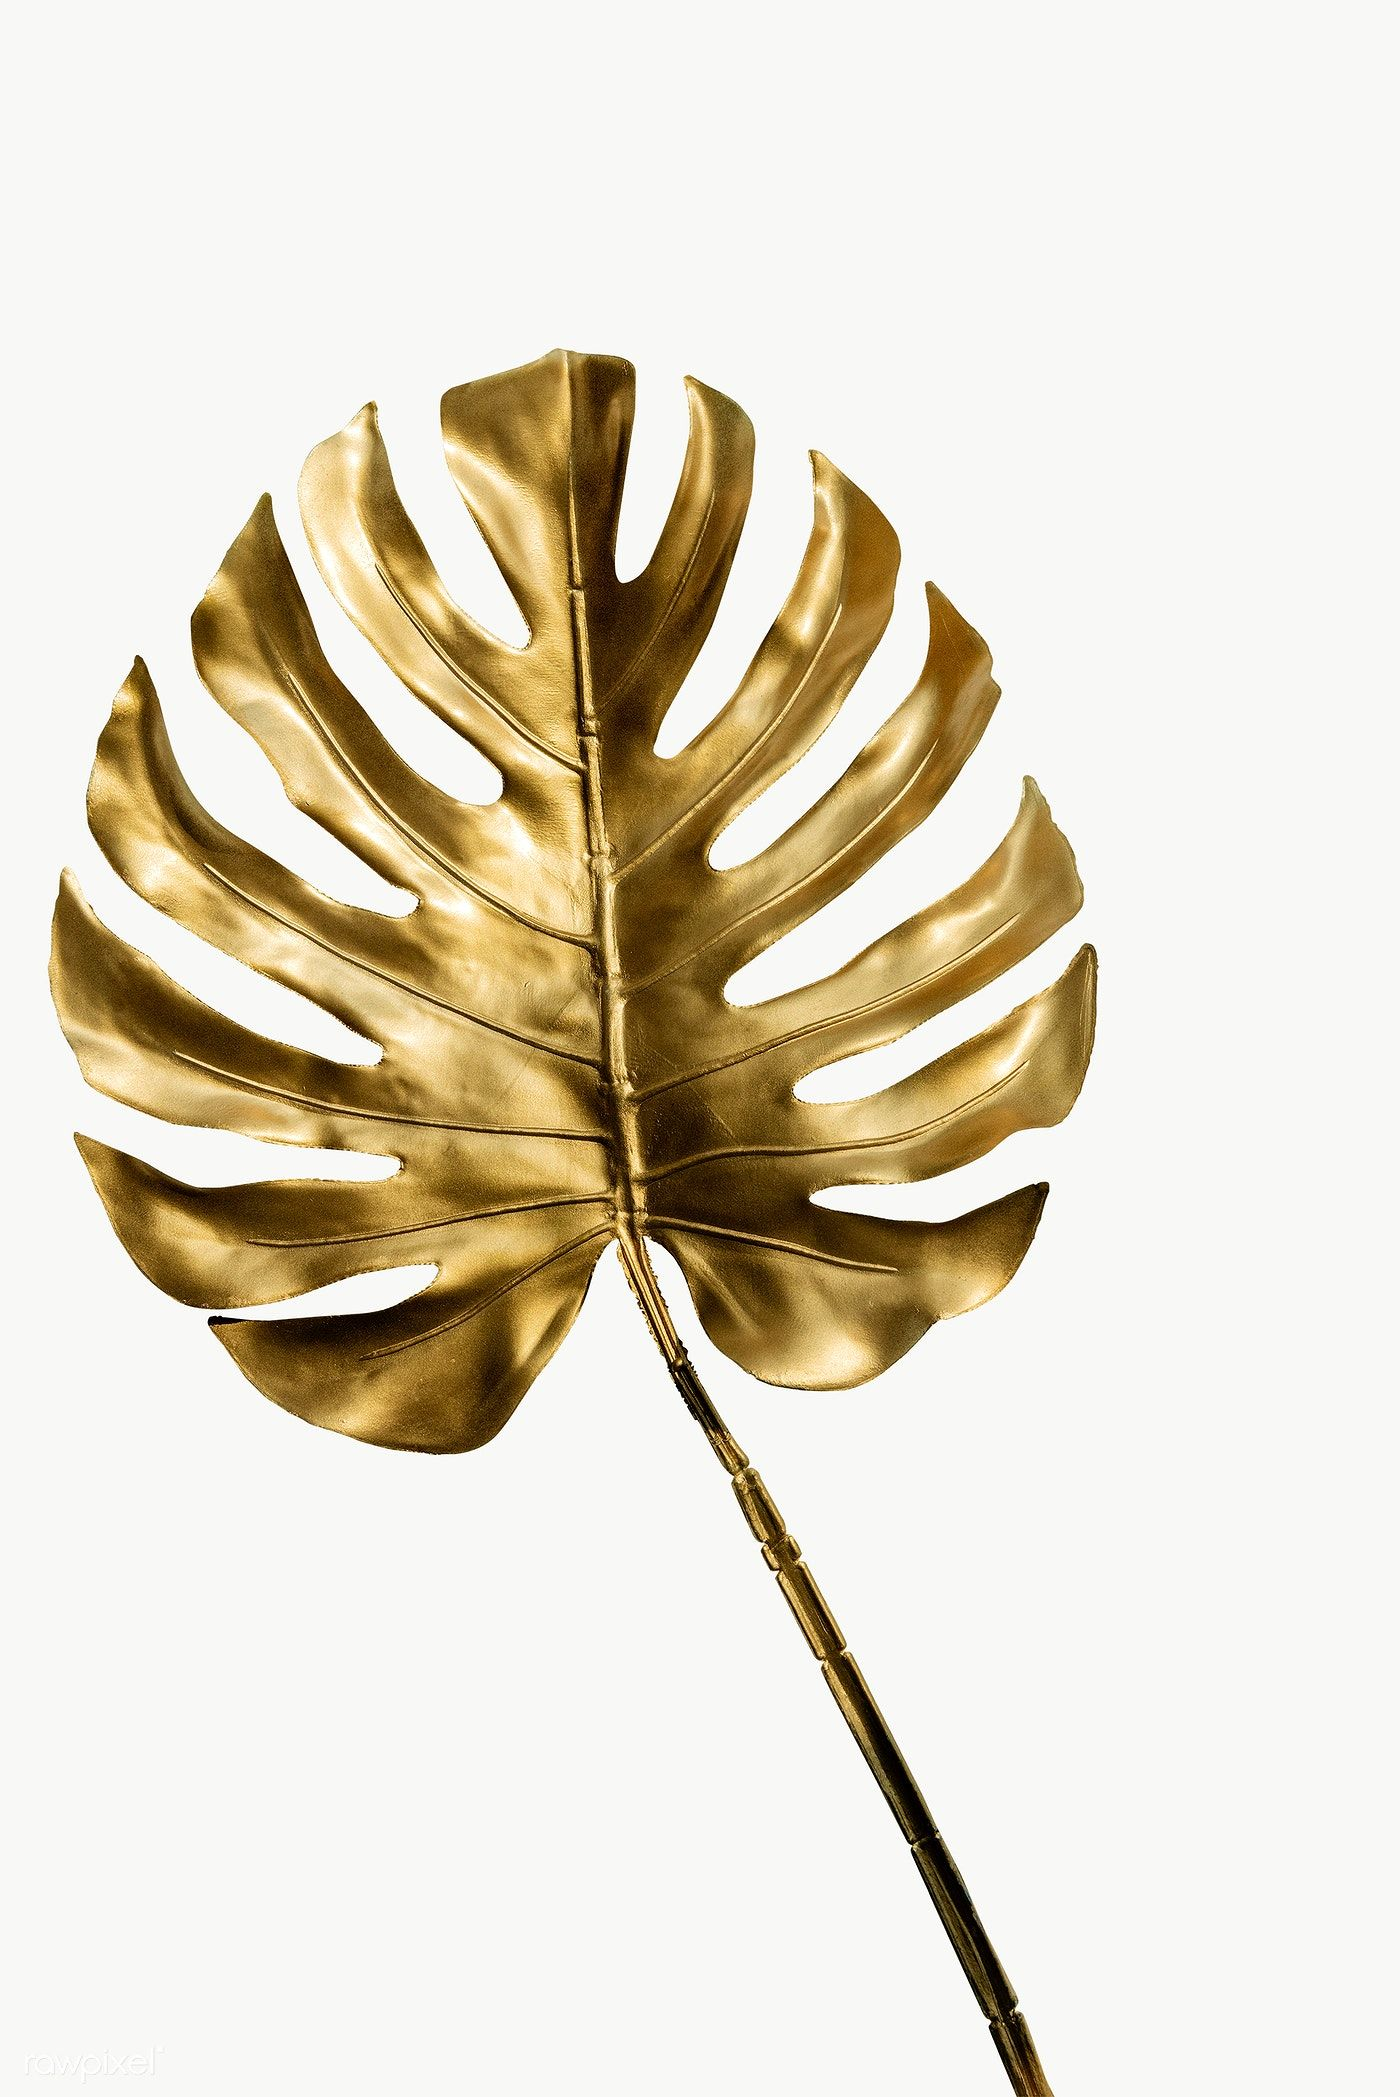 Shiny Golden Monstera Leaf Transparent Png Free Image By Rawpixel Com Teddy Rawpixel